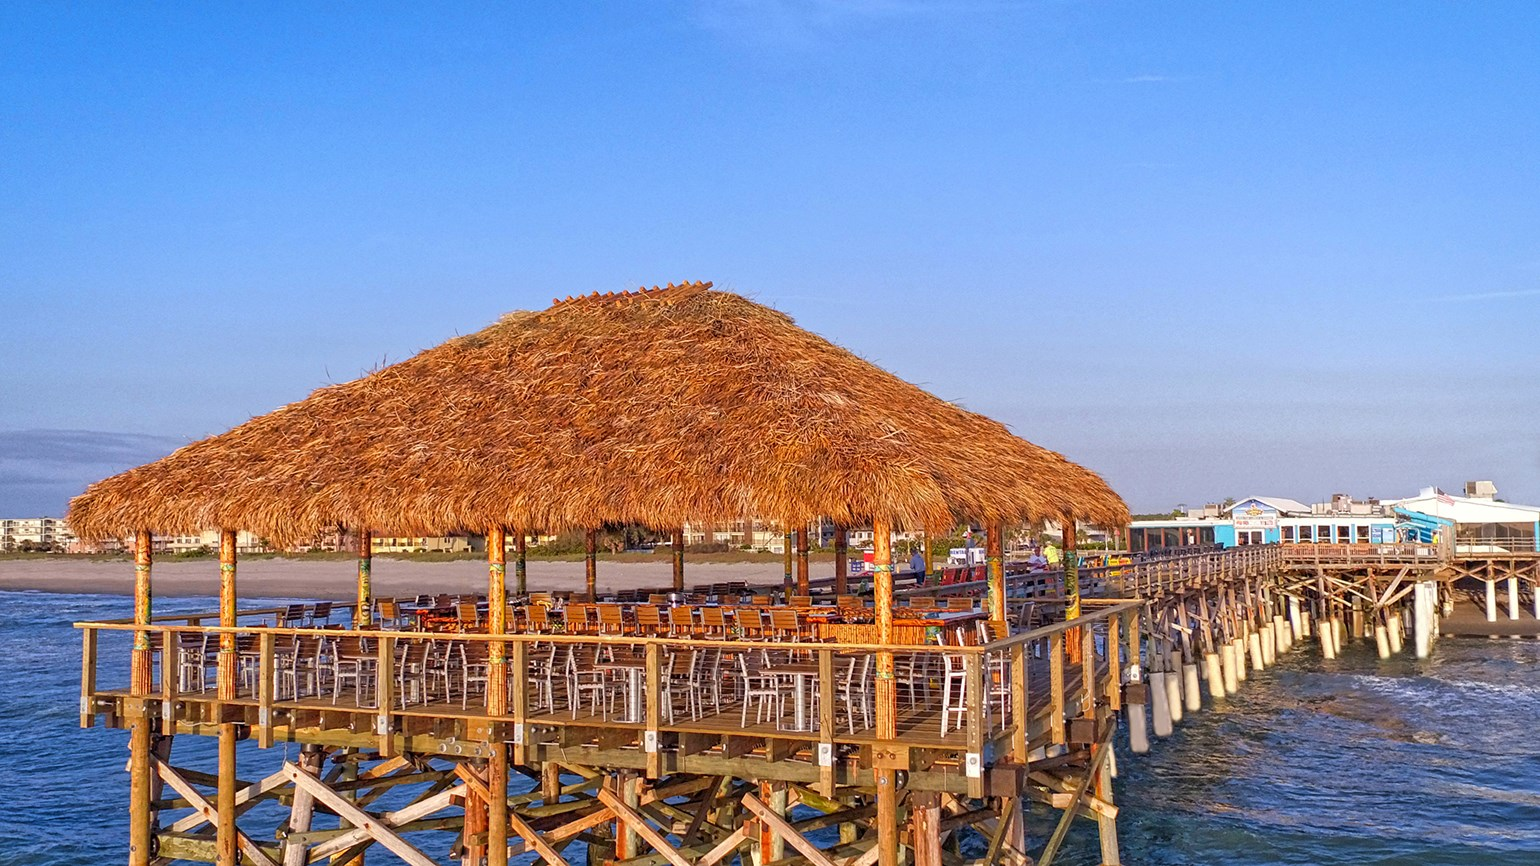 Rikki Tiki Tavern opens on Cocoa Beach Pier